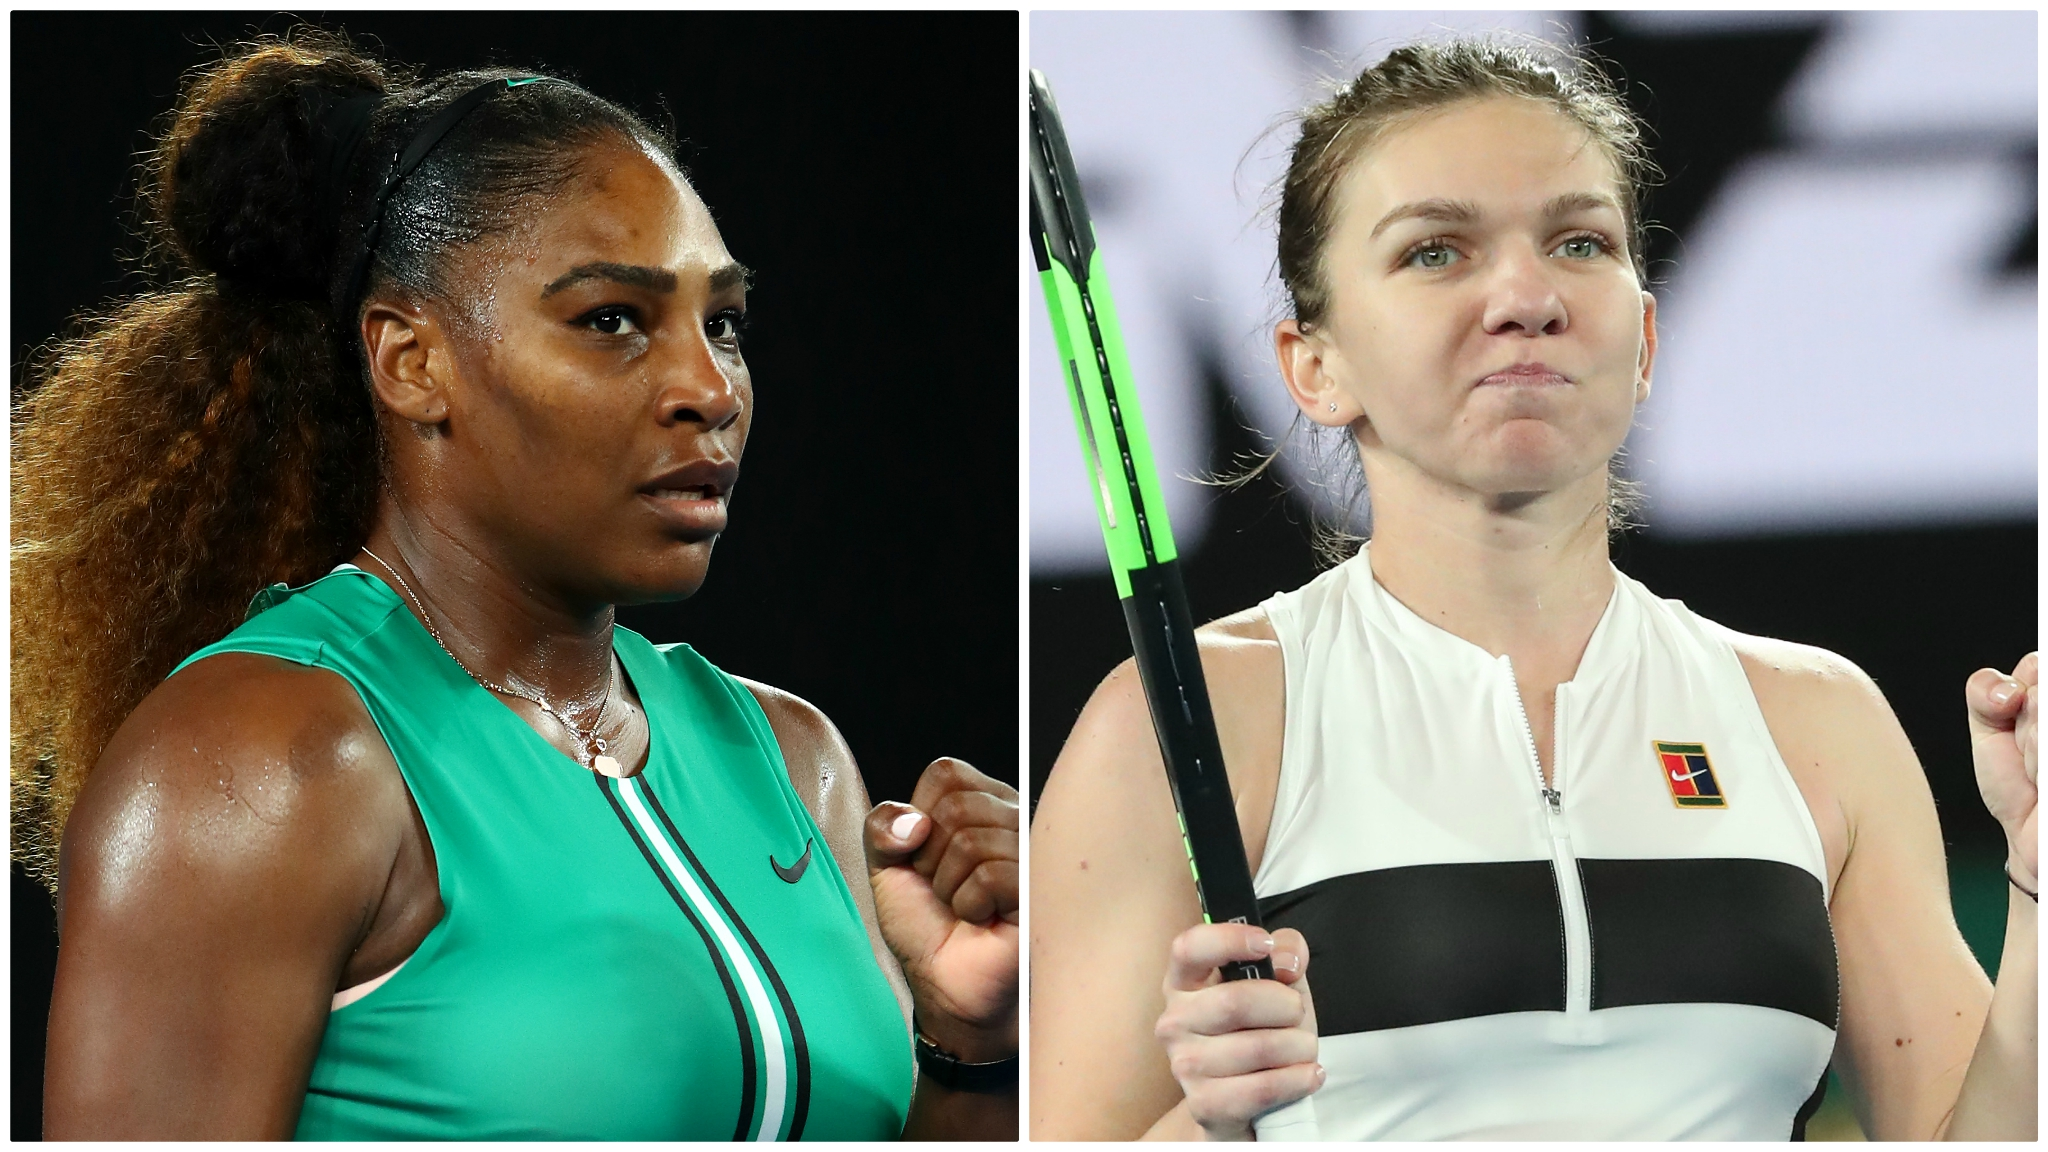 'Confident' world number one Halep ready to take on 'best in world' Williams